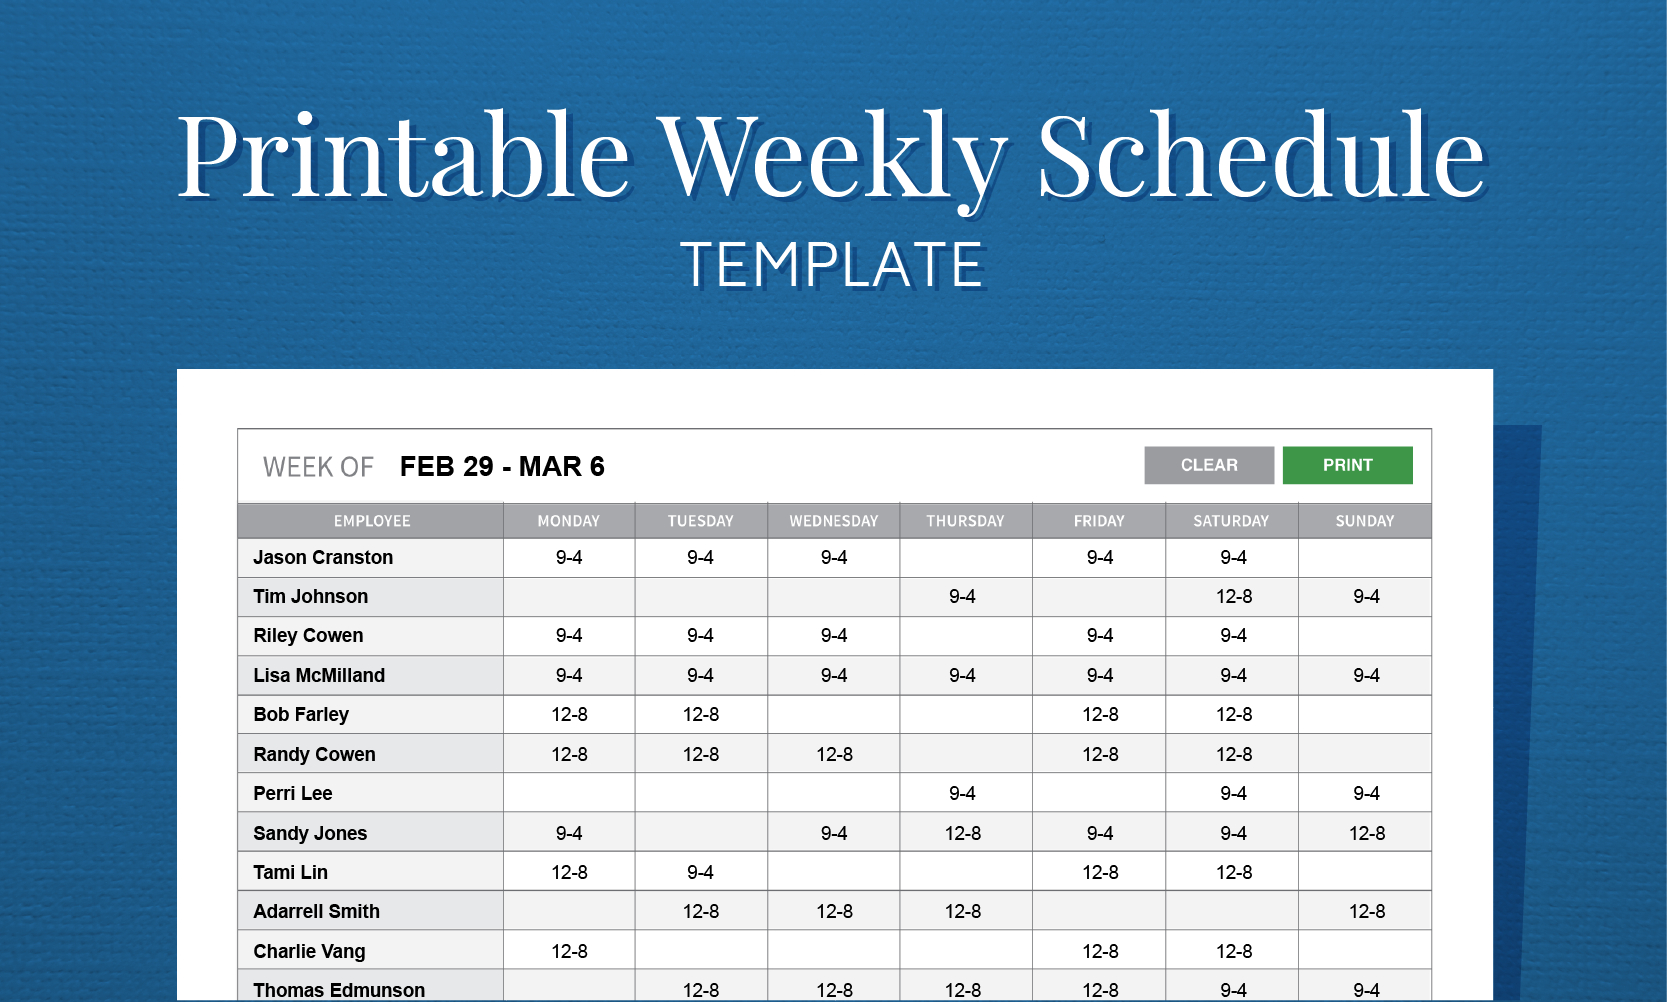 Free Printable Weekly Work Schedule Template For Employee Scheduling - Free Printable Work Schedule Maker